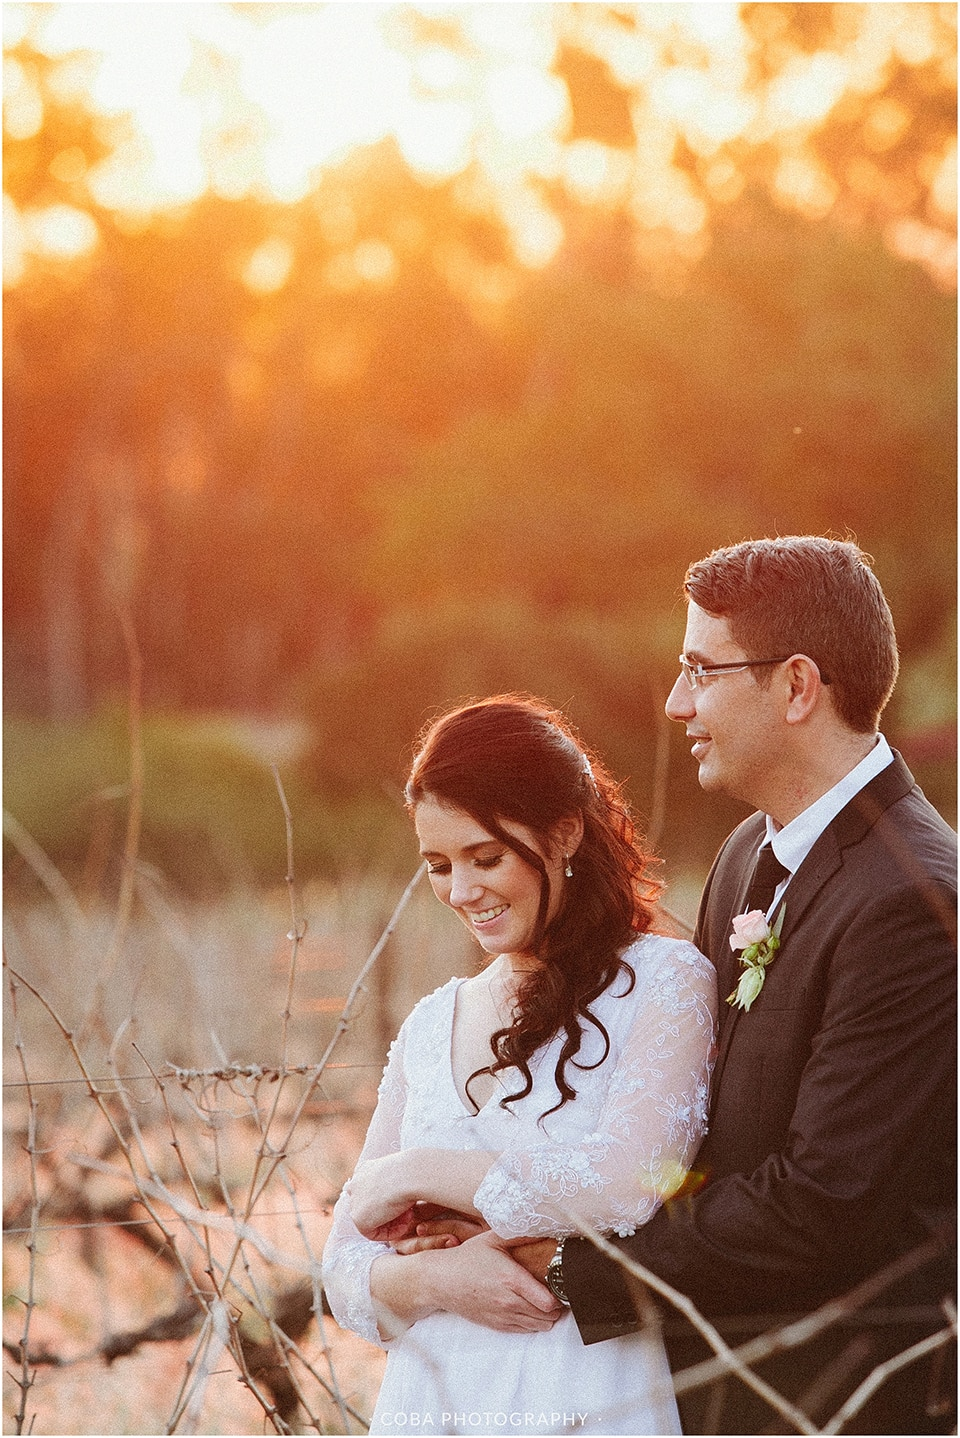 Carlo & Nicolette - Langkloof Roses - Coba Photography (241)